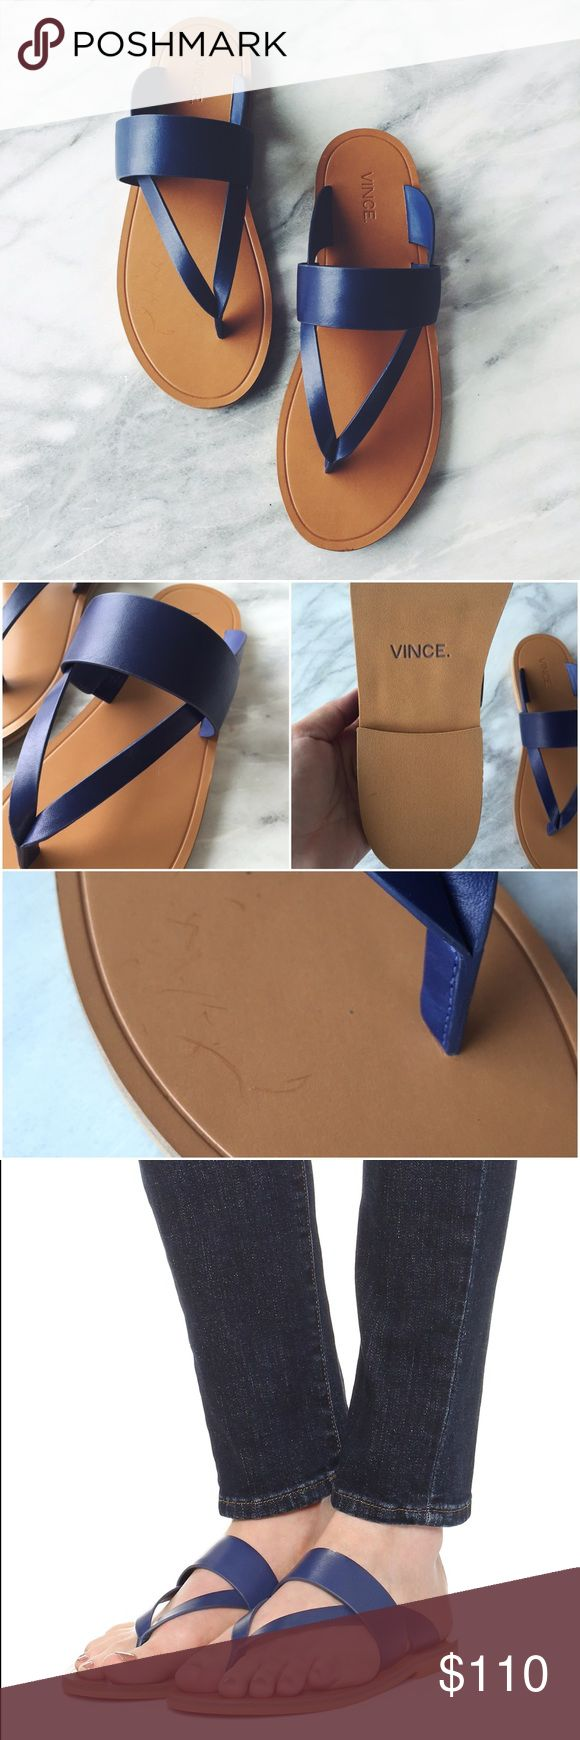 Vince Blue Leather Flat Strappy Sandals •Simple-chic structure defines Vince's leather thong sandals for a subtle update on an essential style.  •Size 7, true to size.  •Display shoe, like new condition. Original box not included.  •NO TRADES/HOLDS/PAYPAL/MERC/VINTED/NONSENSE. Vince Shoes Sandals